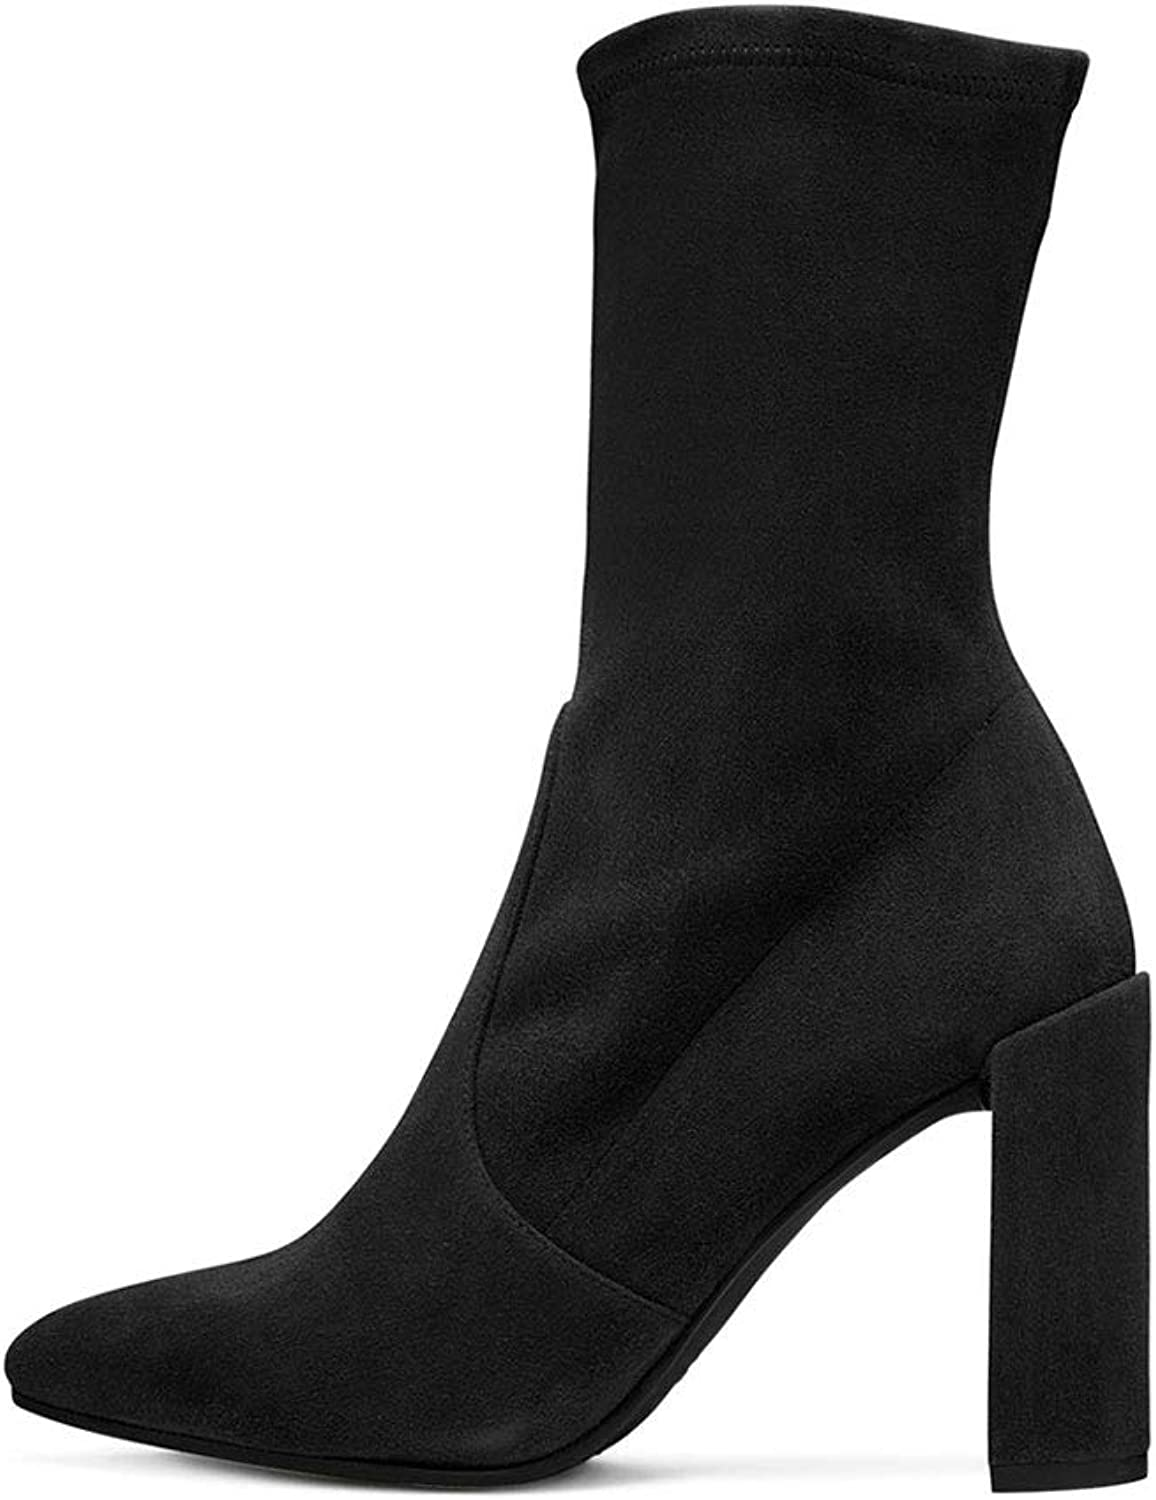 Women's Short Boots with High Heel Ankle Boots Thick Heel Socks Boots Pointed Head Middle Boots Clothing Match with Artificial PU